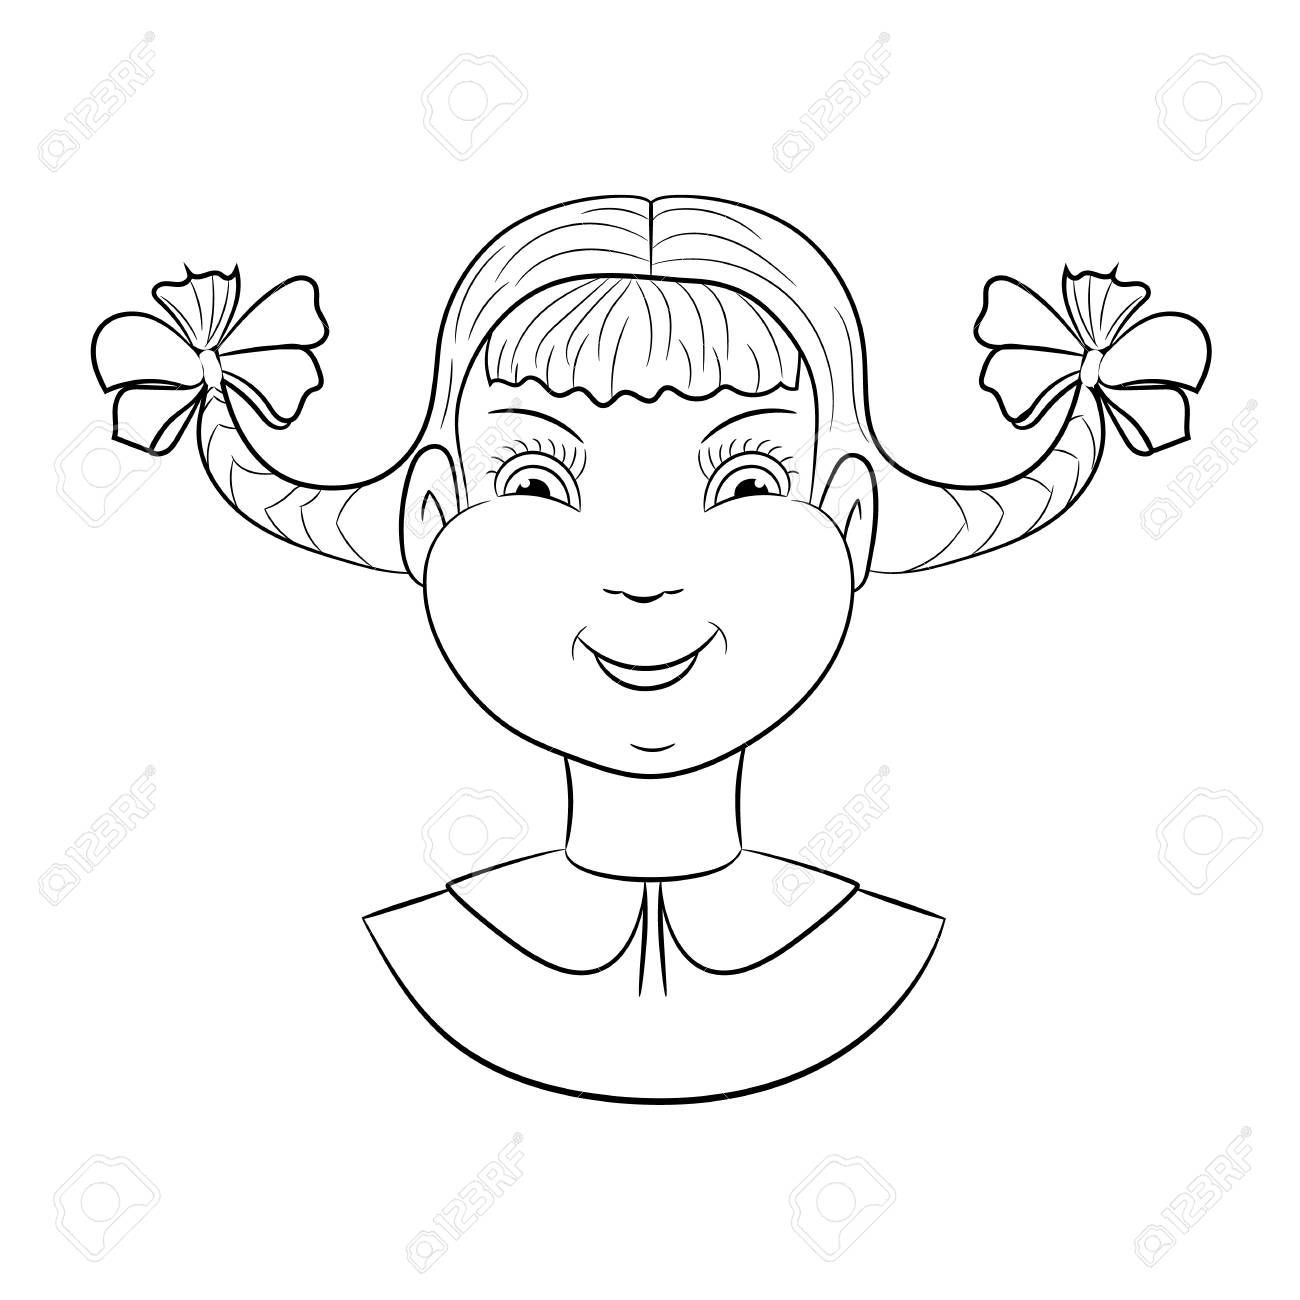 Contour Cartoon Girl Face For Coloring Book Vector Kid Avatar Stock